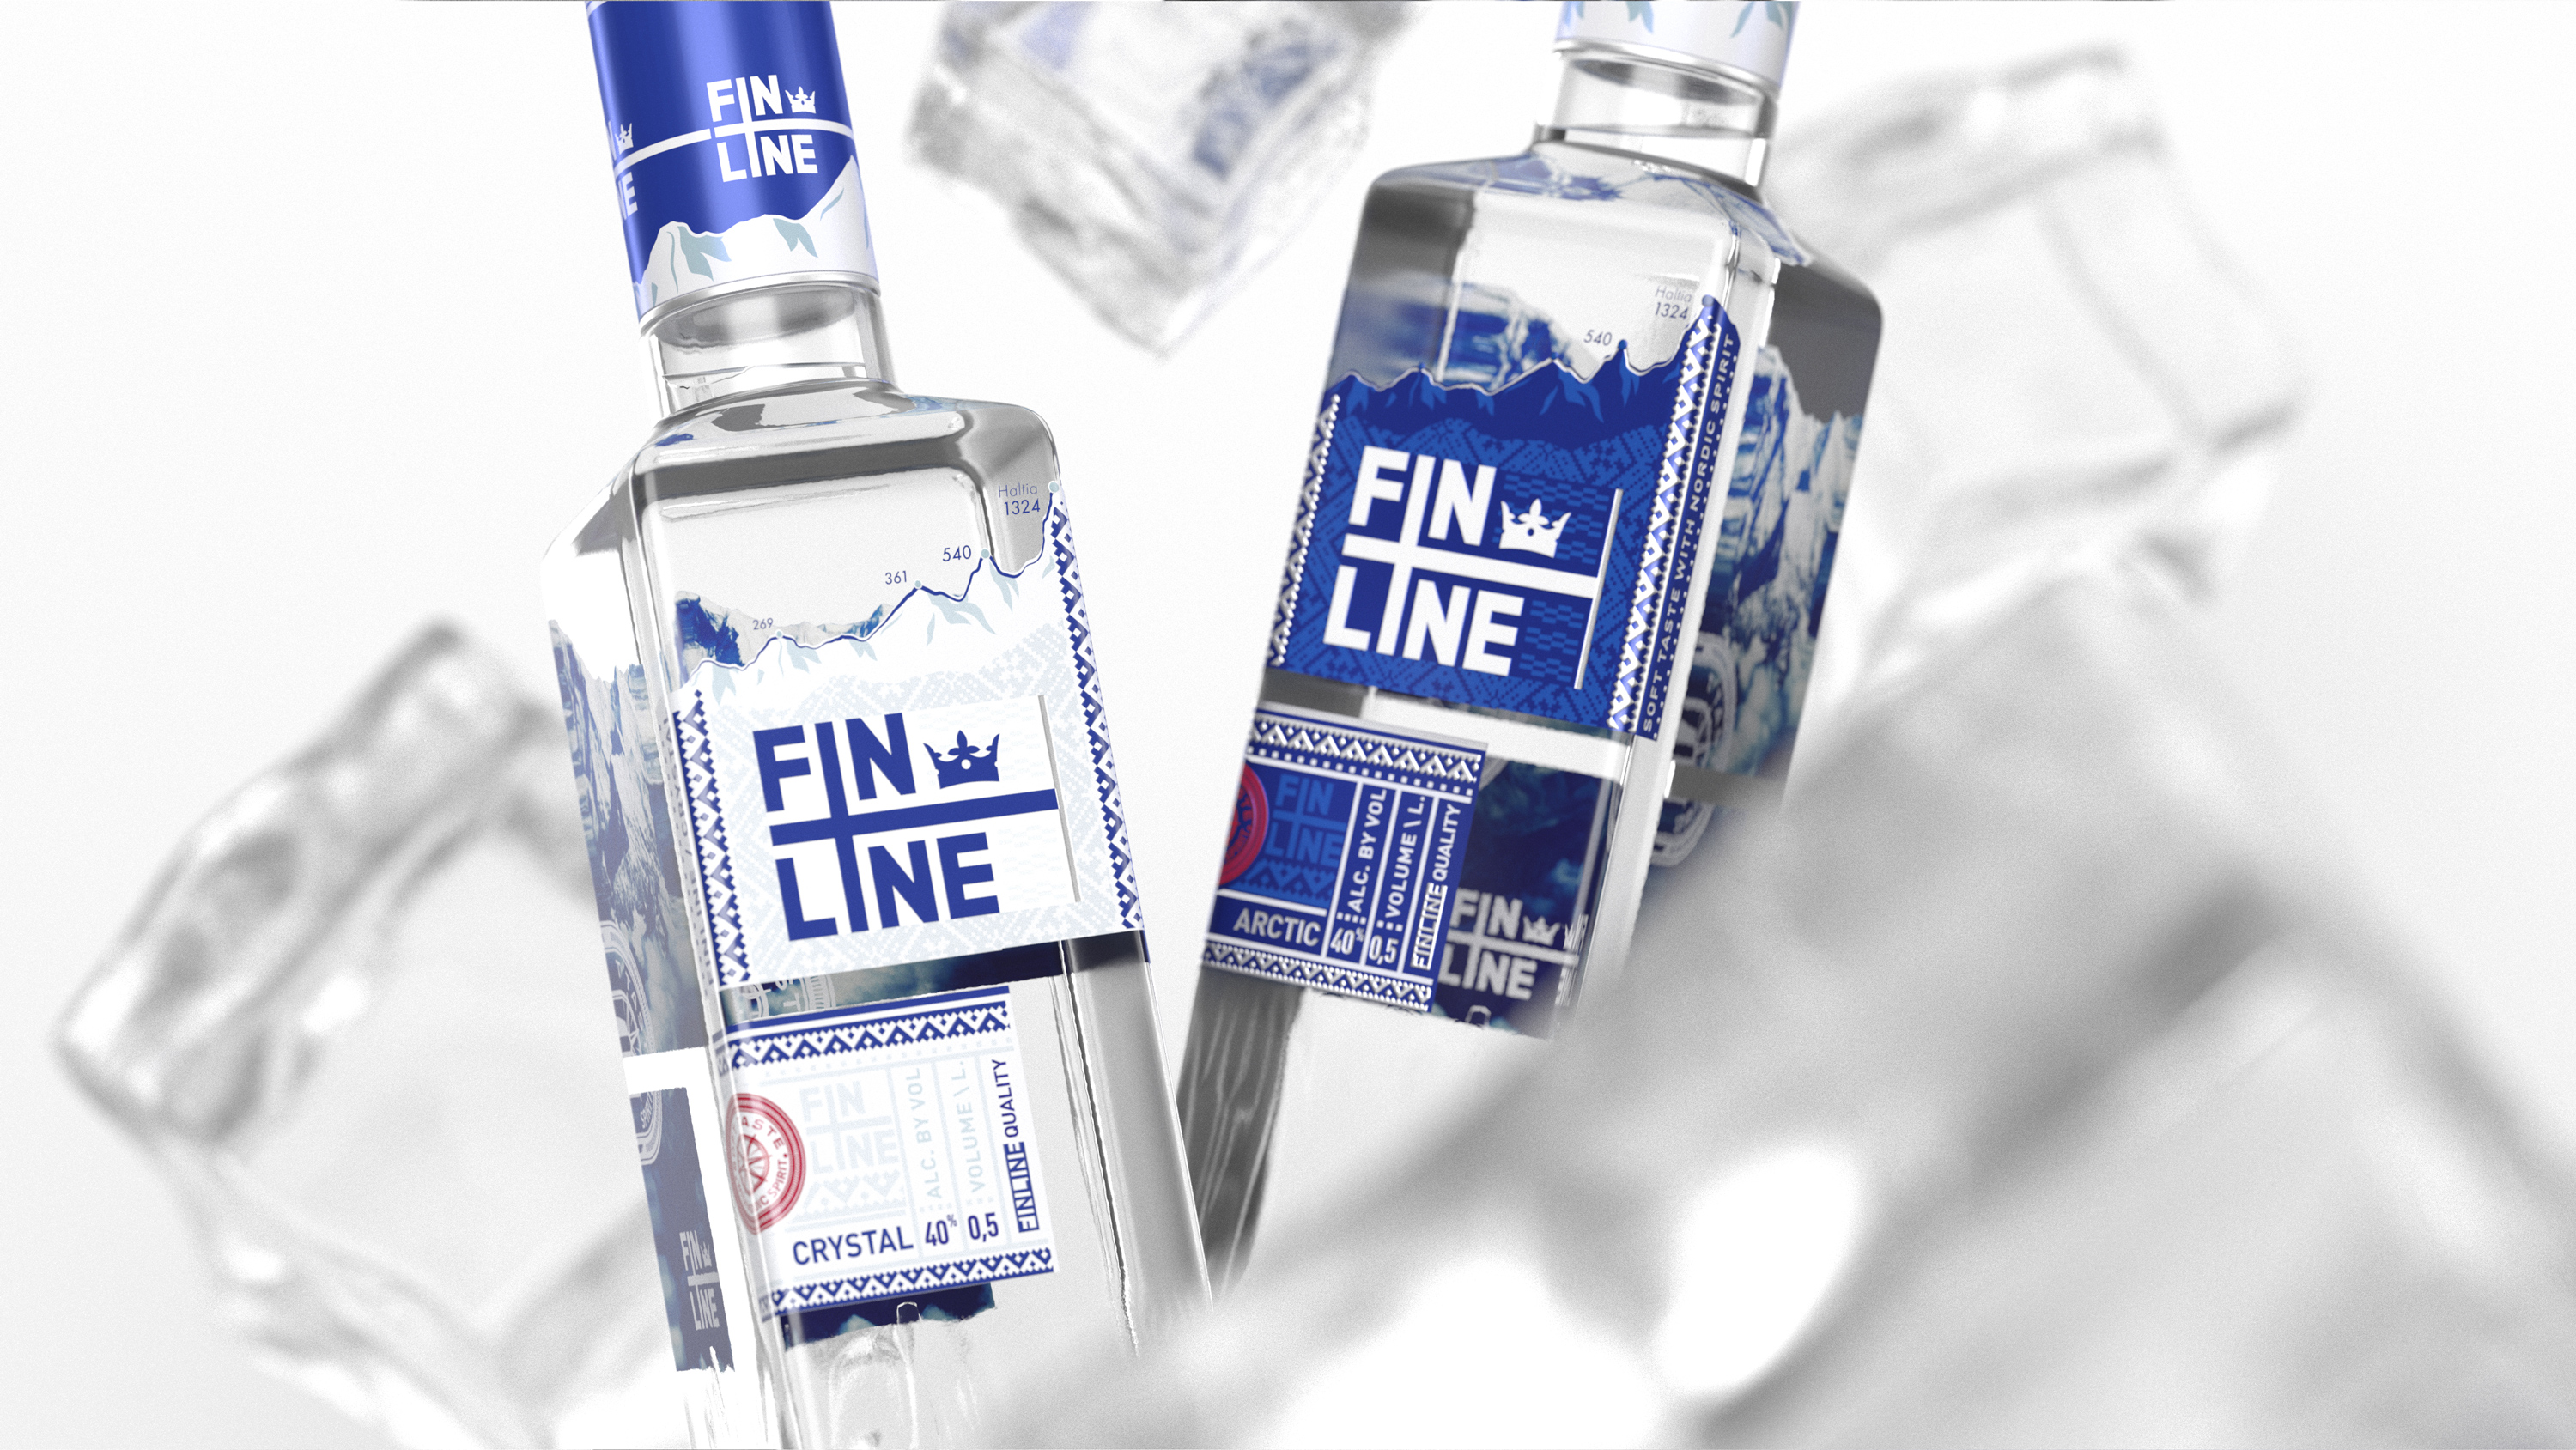 Northern Europe Finline Brand with a Strong Character